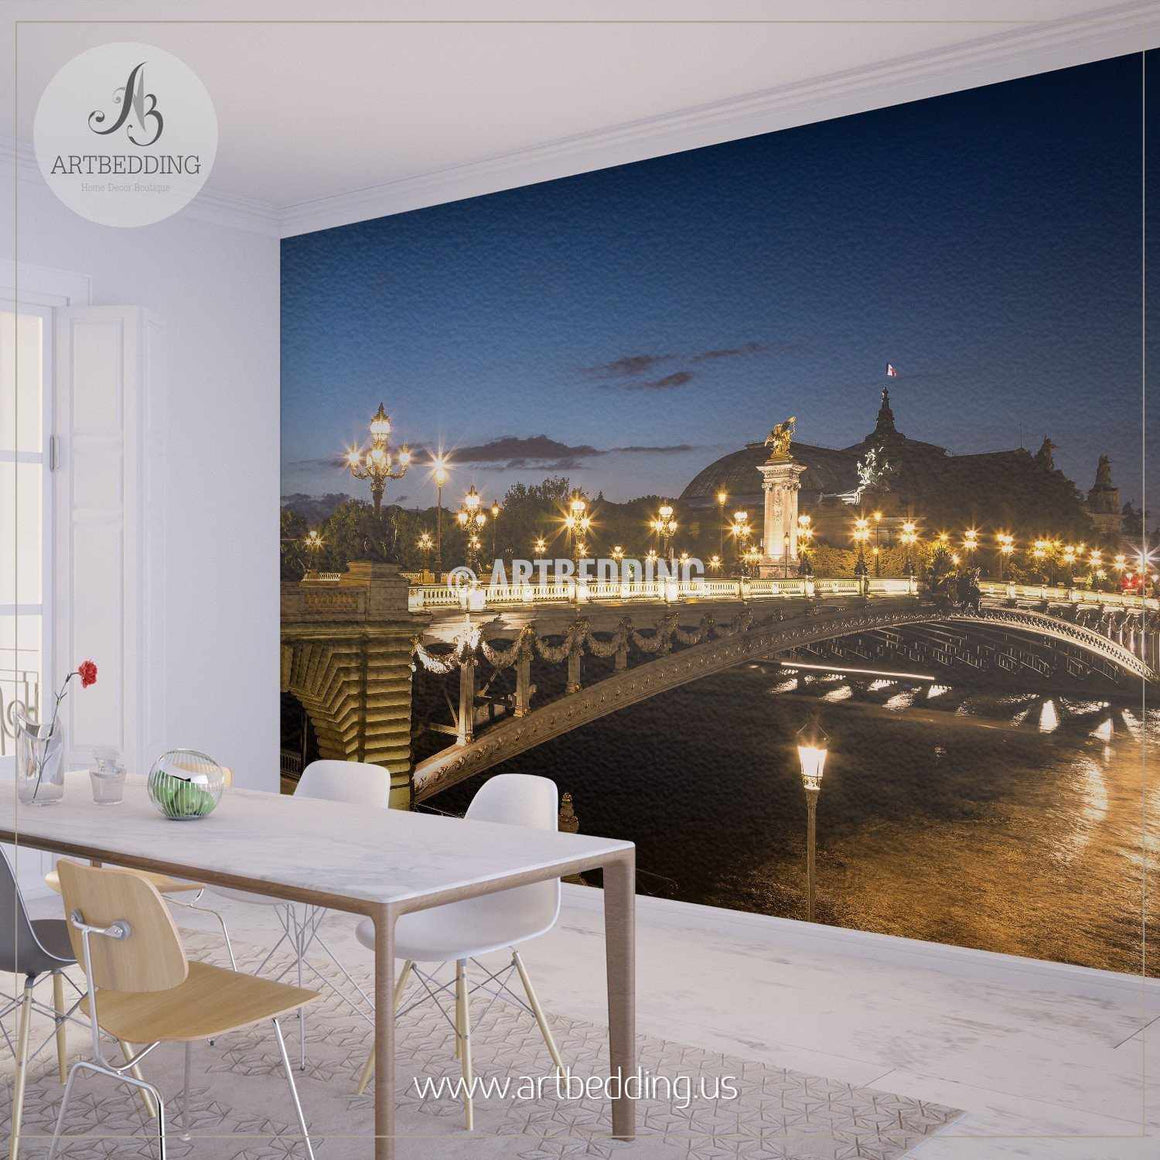 Bridge of the Alexandre III, Paris Cityscape Wall Mural, France Photo sticker, France wall decor wall mural